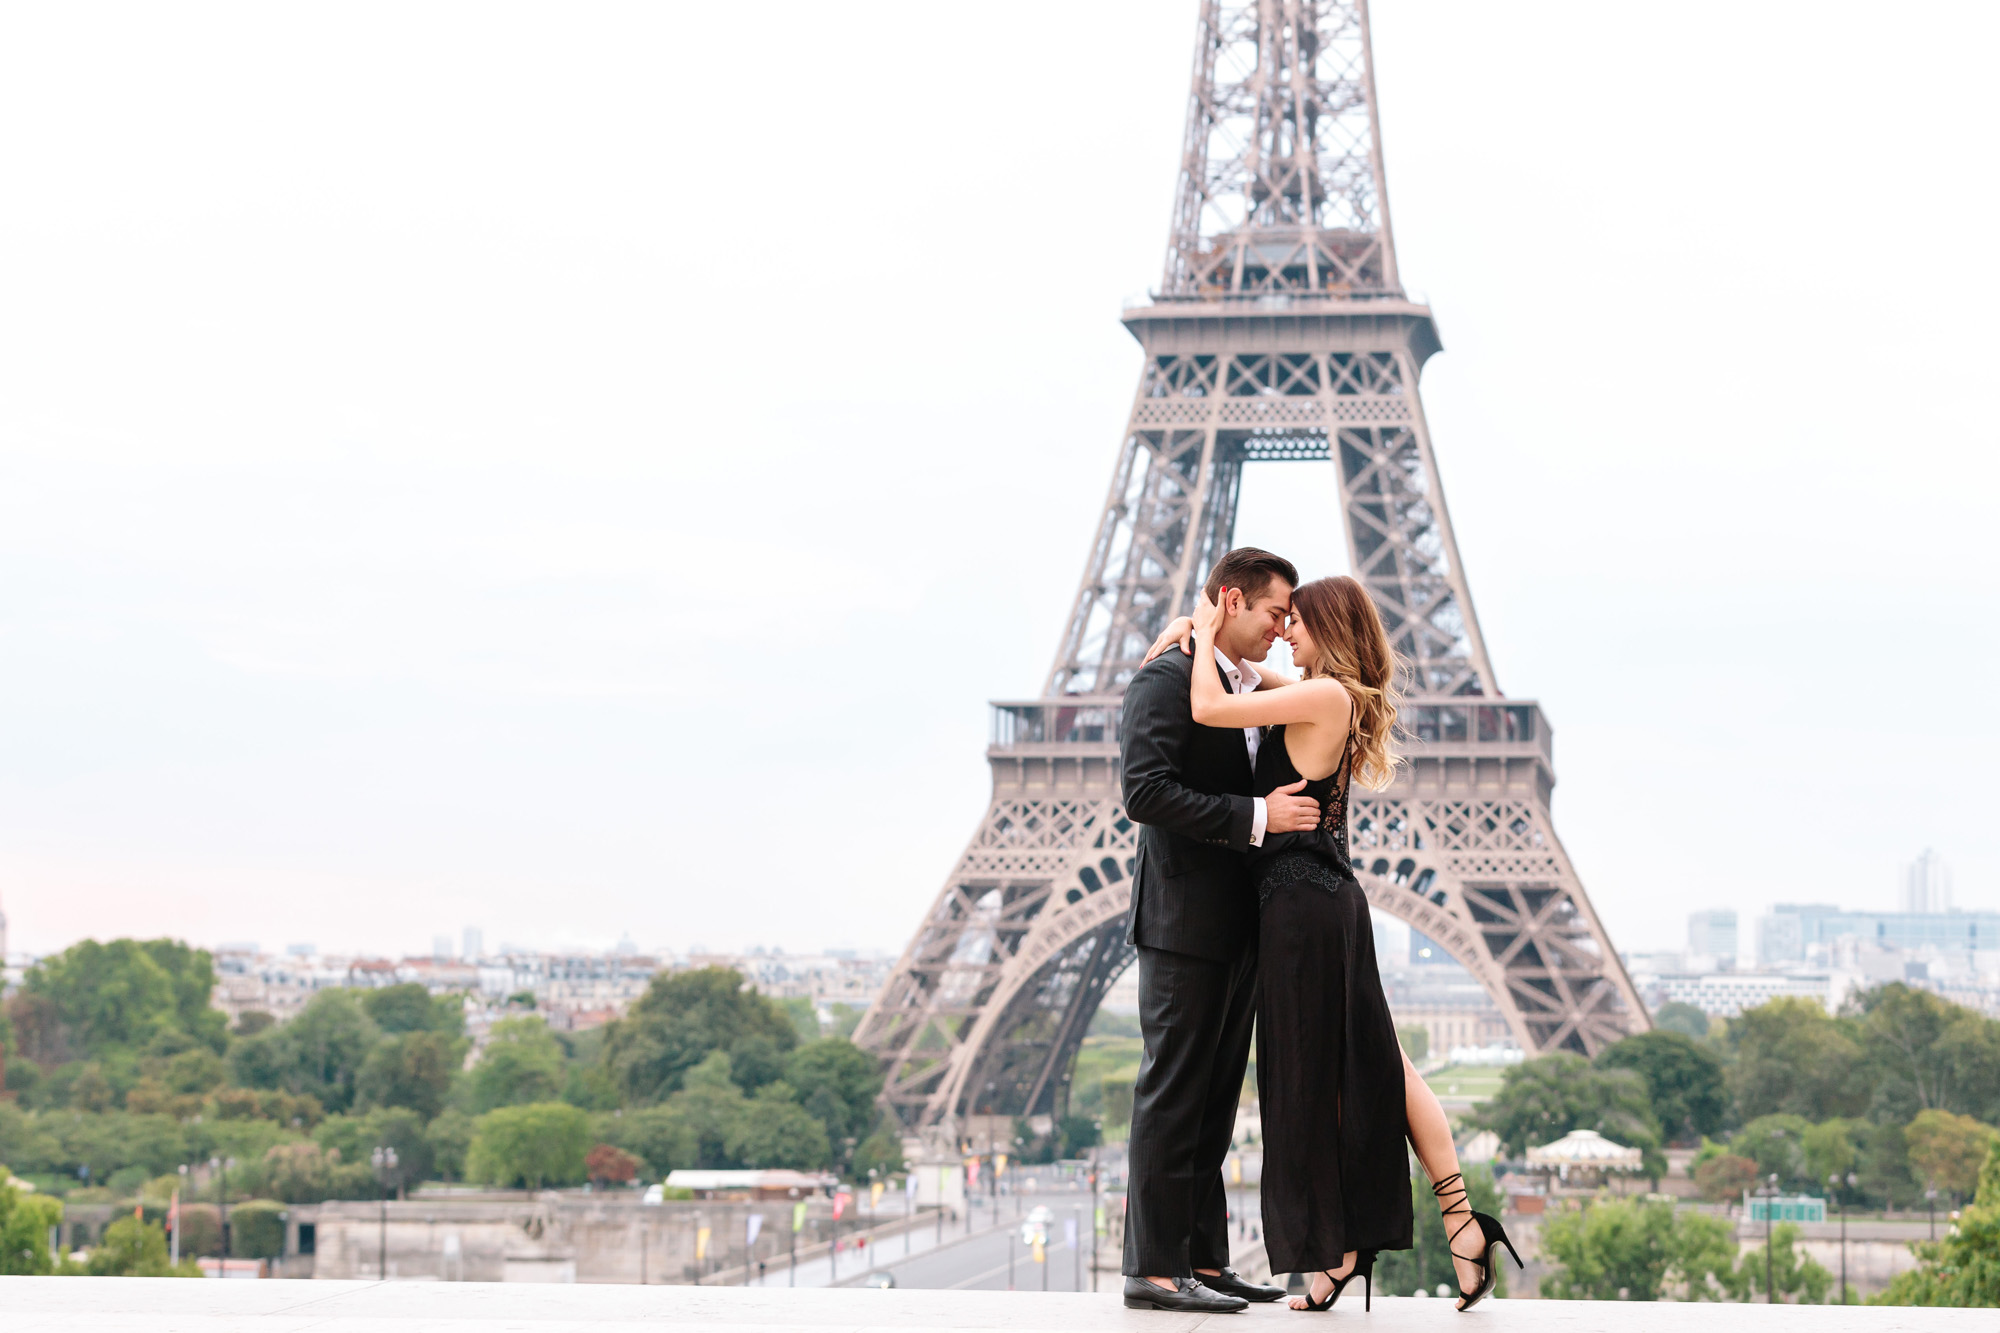 Paris Photographer Travel Love story Eiffel Tower Couple Sesssion IheartParisfr